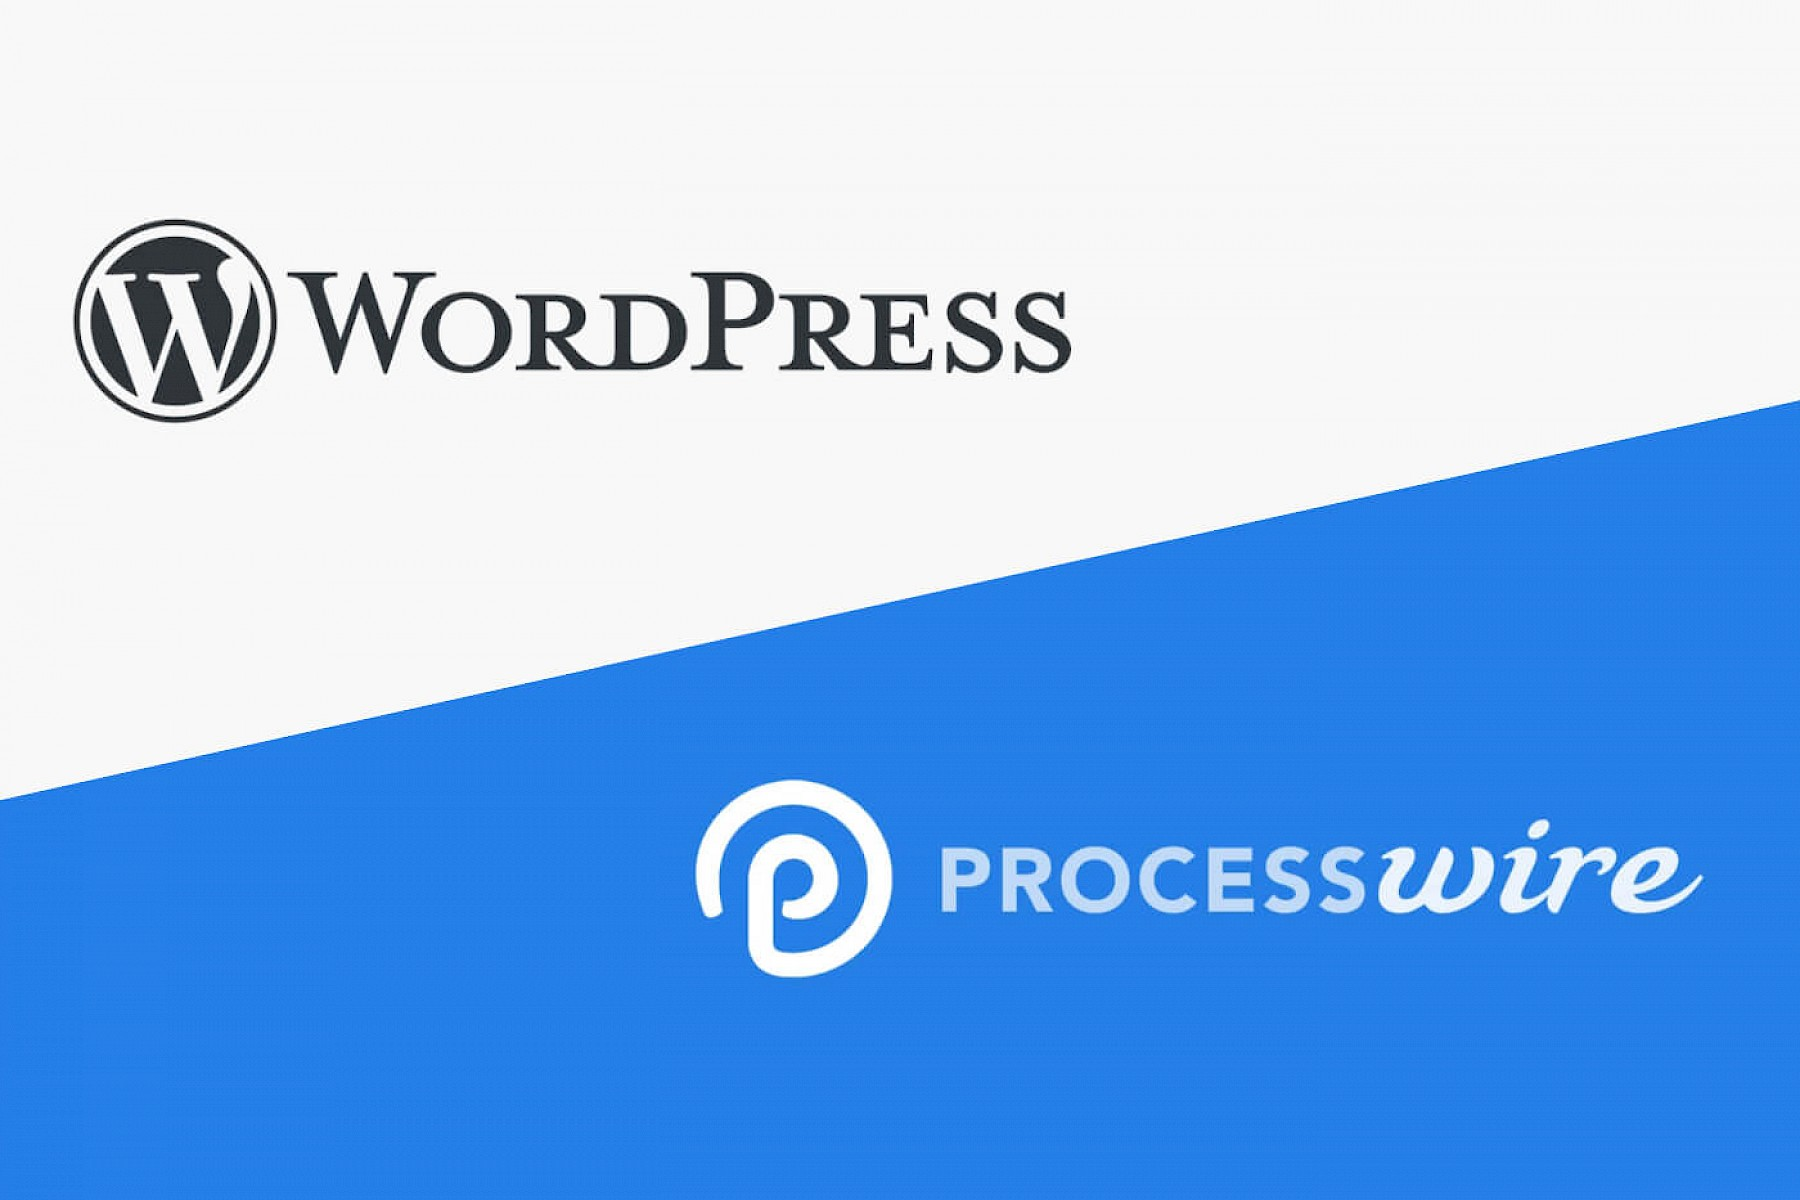 WordPress vs ProcessWire